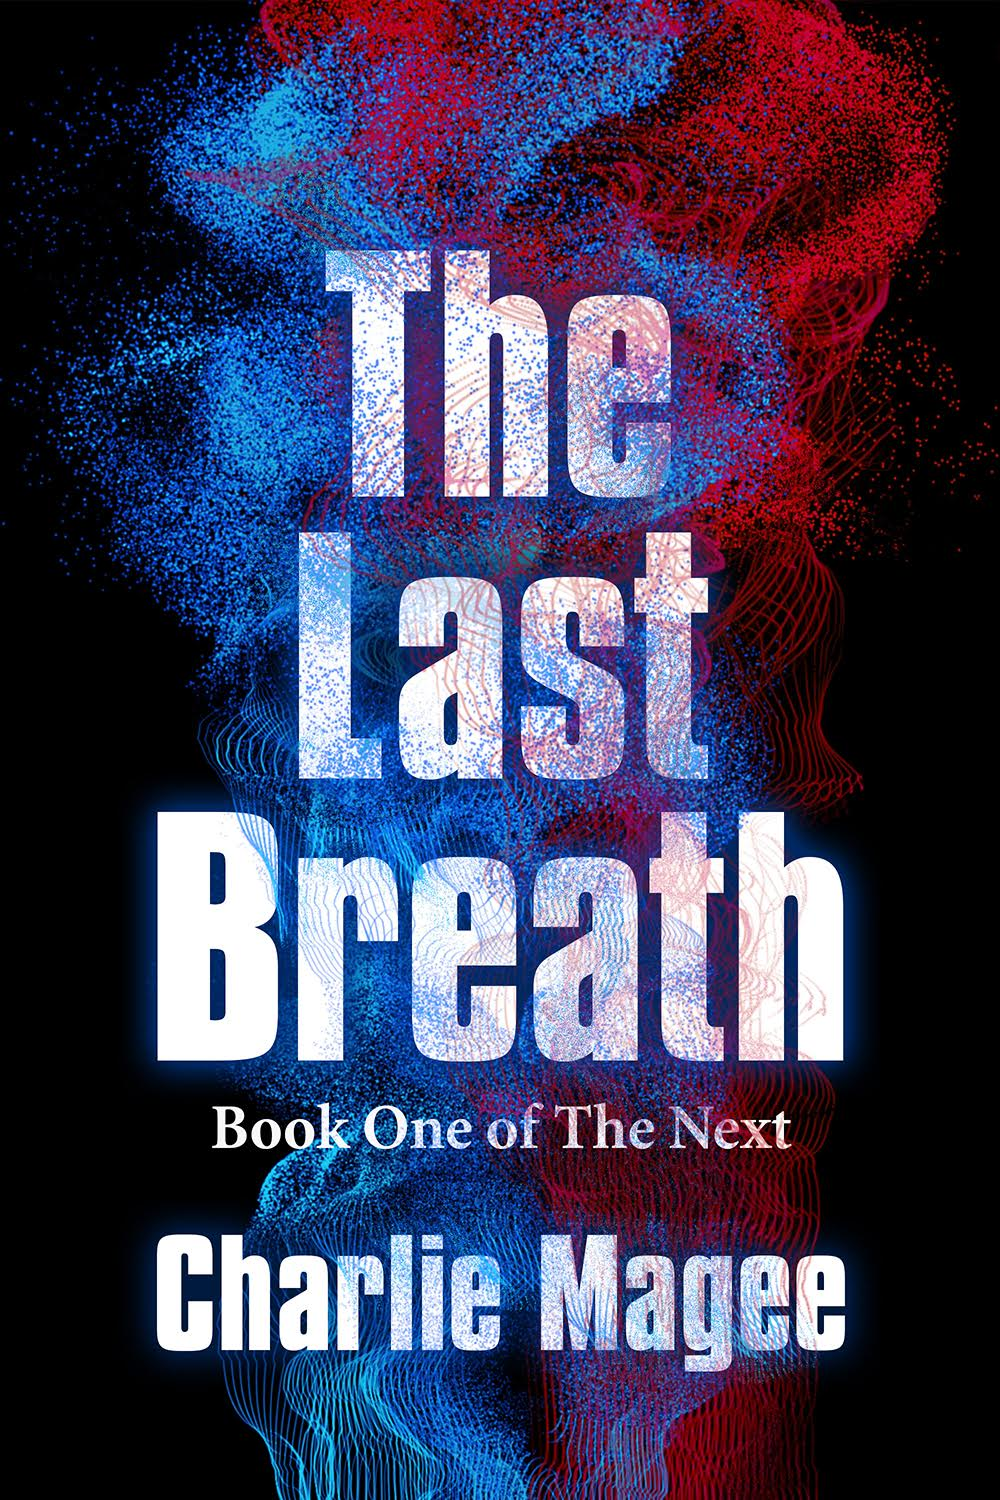 The Last Breath by Charlie Magee